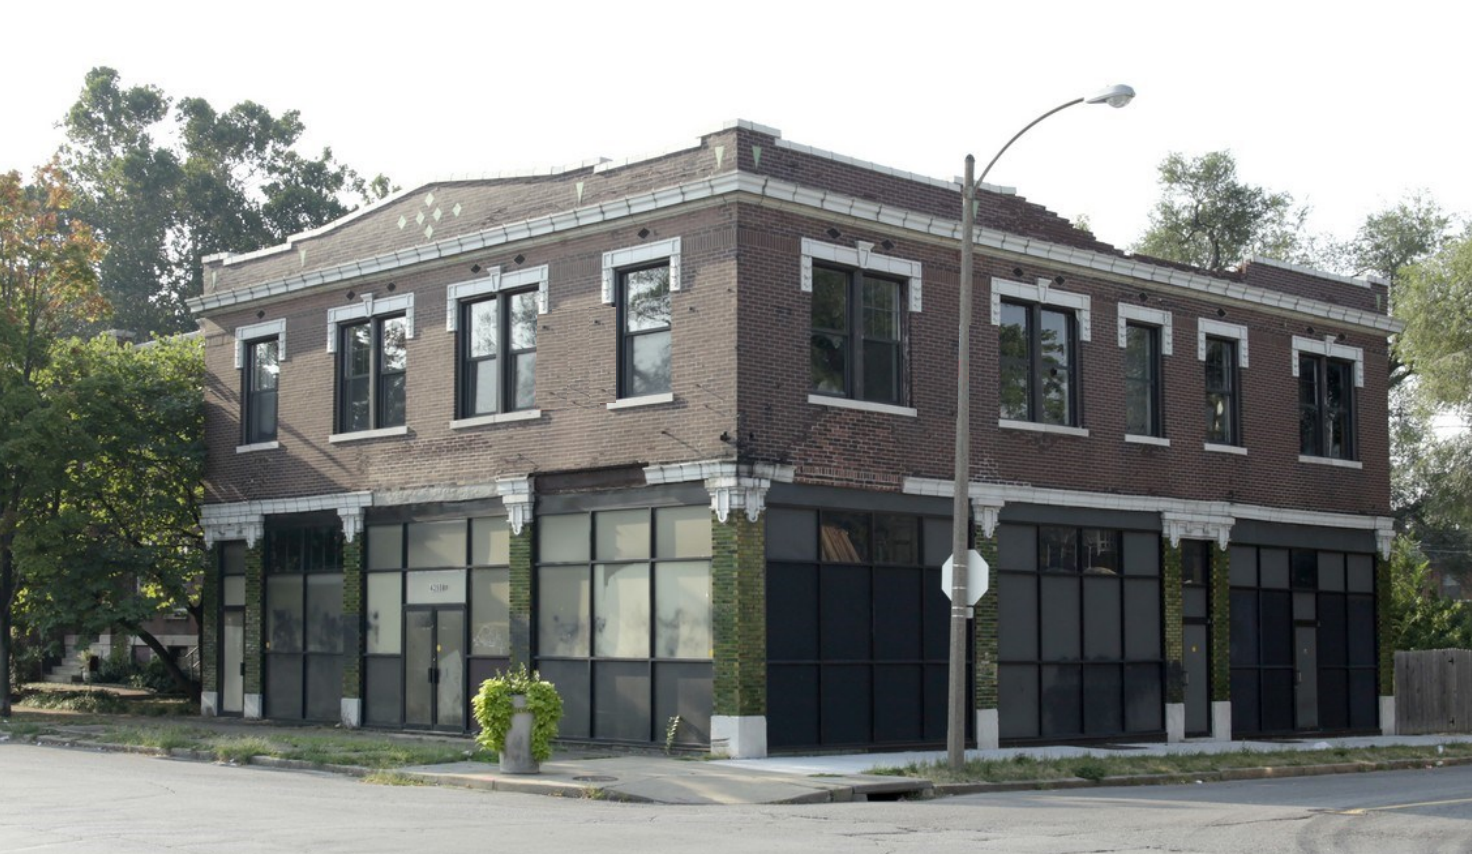 4398 Chouteau Gets Plan for Apartments, Lafser & Associates Office